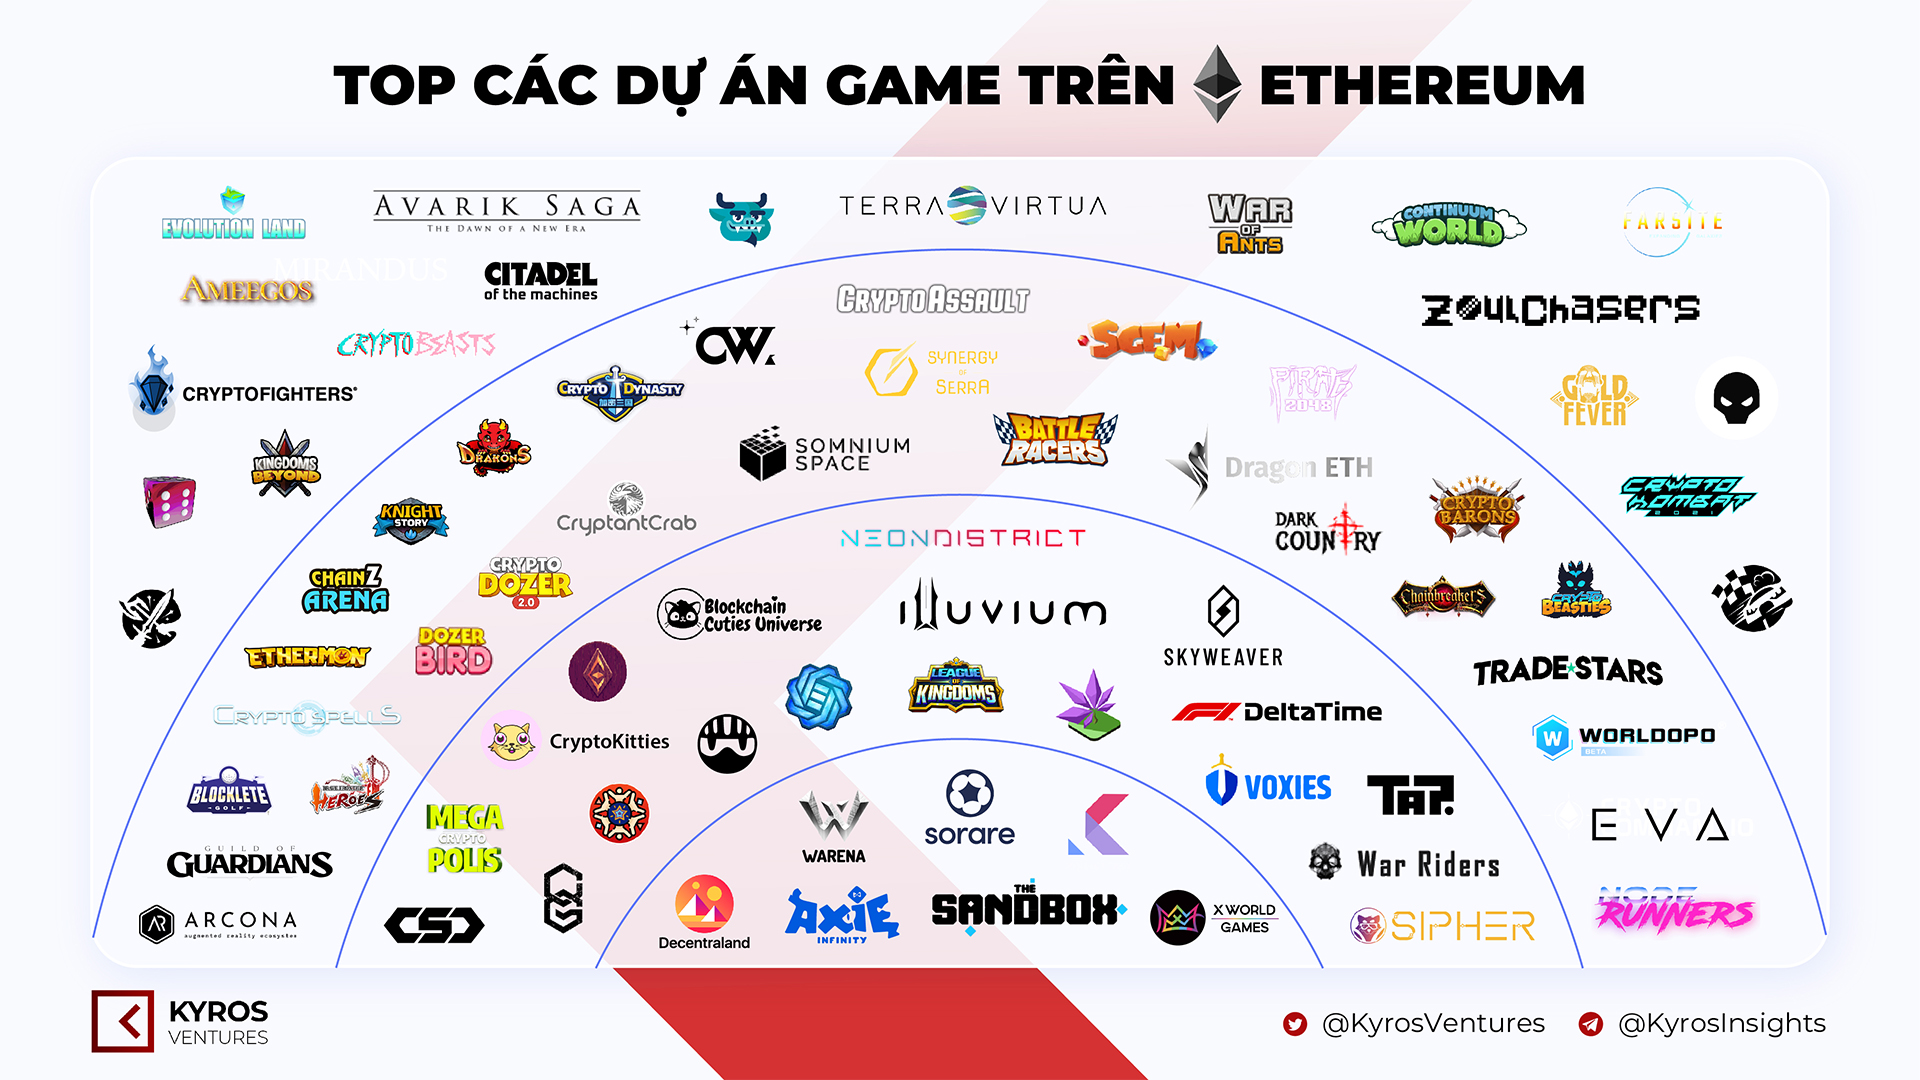 The best Ethereum game